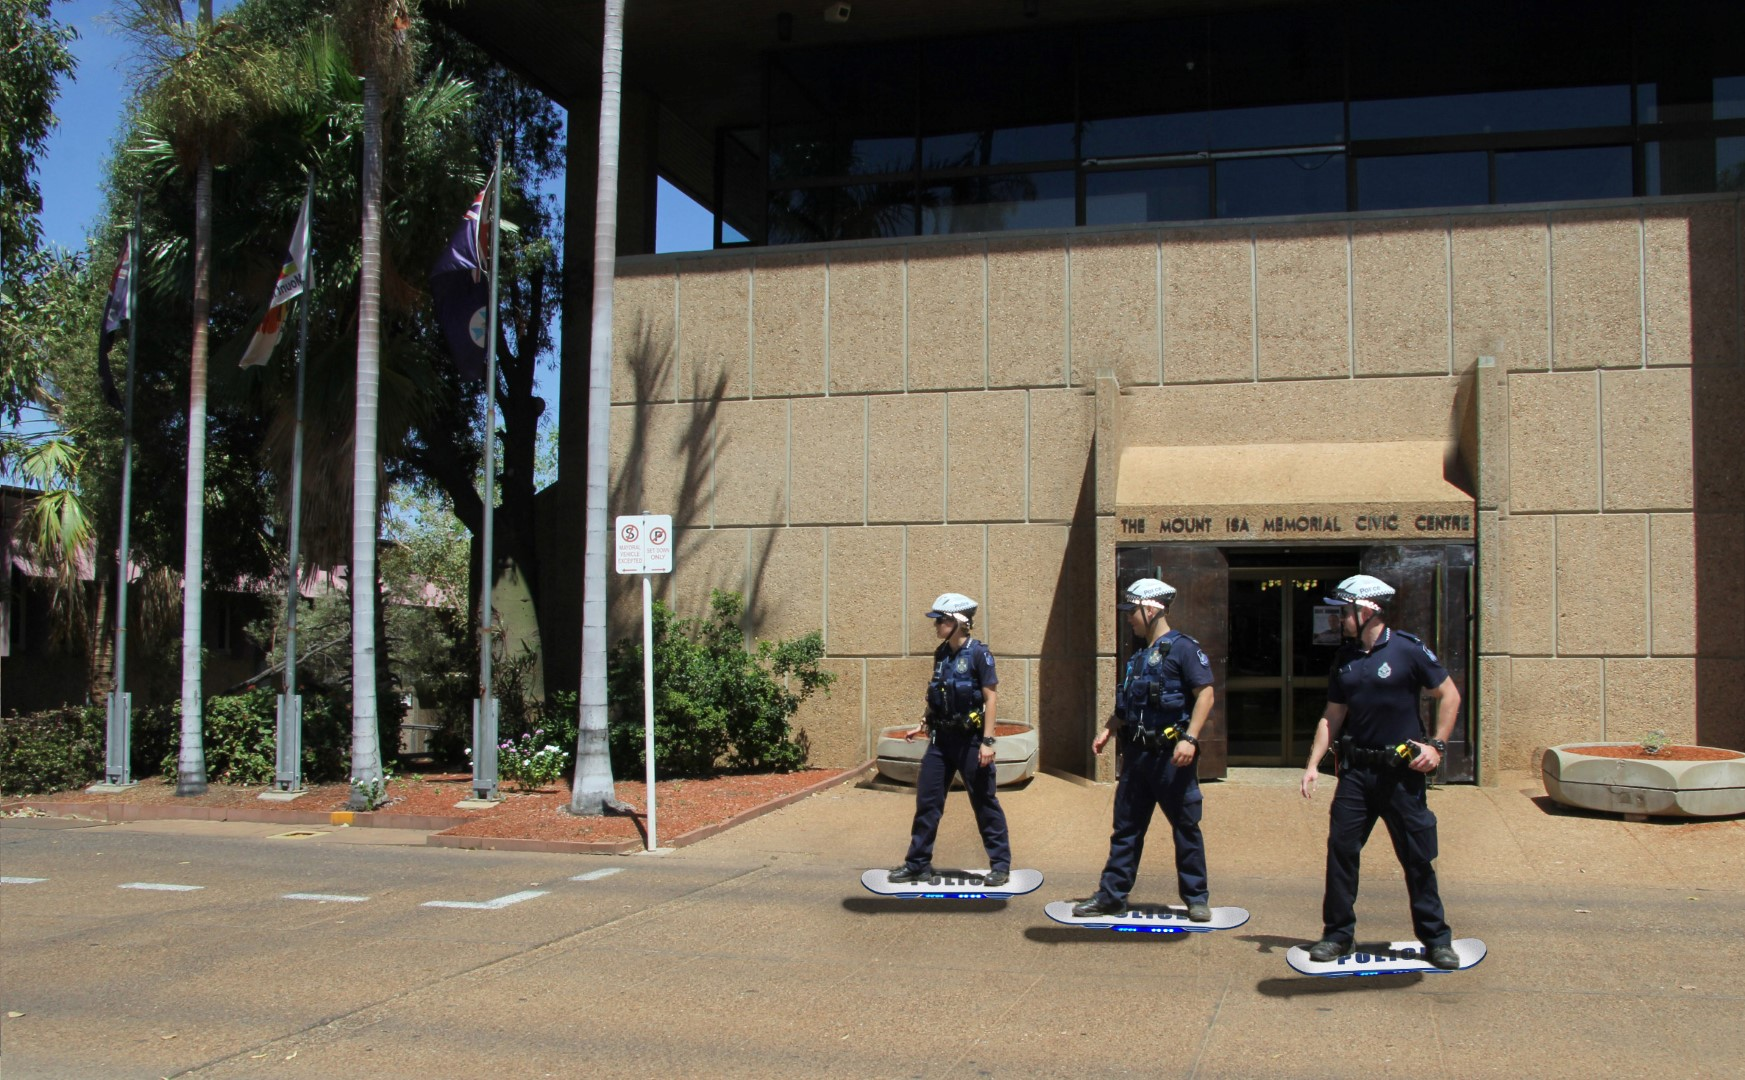 Mount Isa's Hoverboard Unit rushes to the scene in this edited picture, Oct. 21, 2015